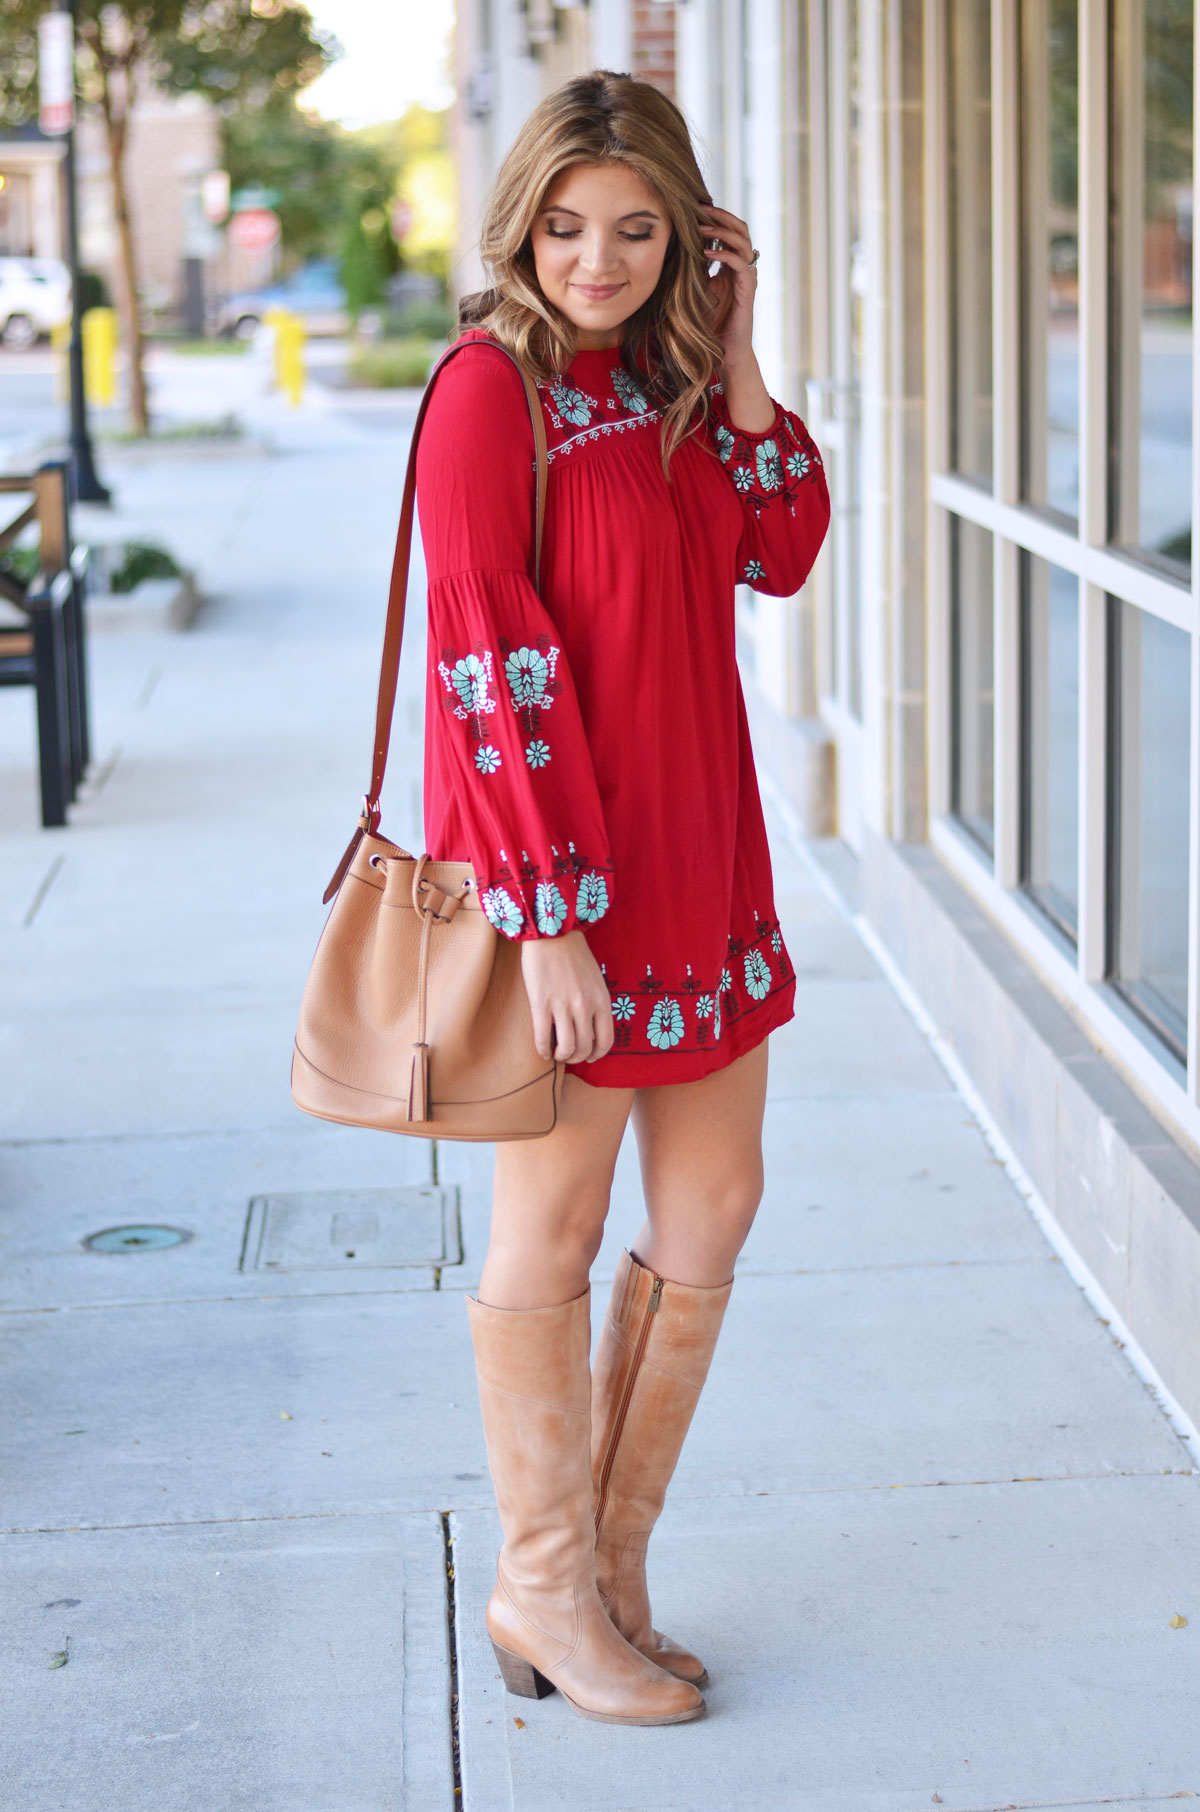 boho fall style - red embroidered mini dress with tan boots and a tan bucket bag | www.fizzandfrosting.com